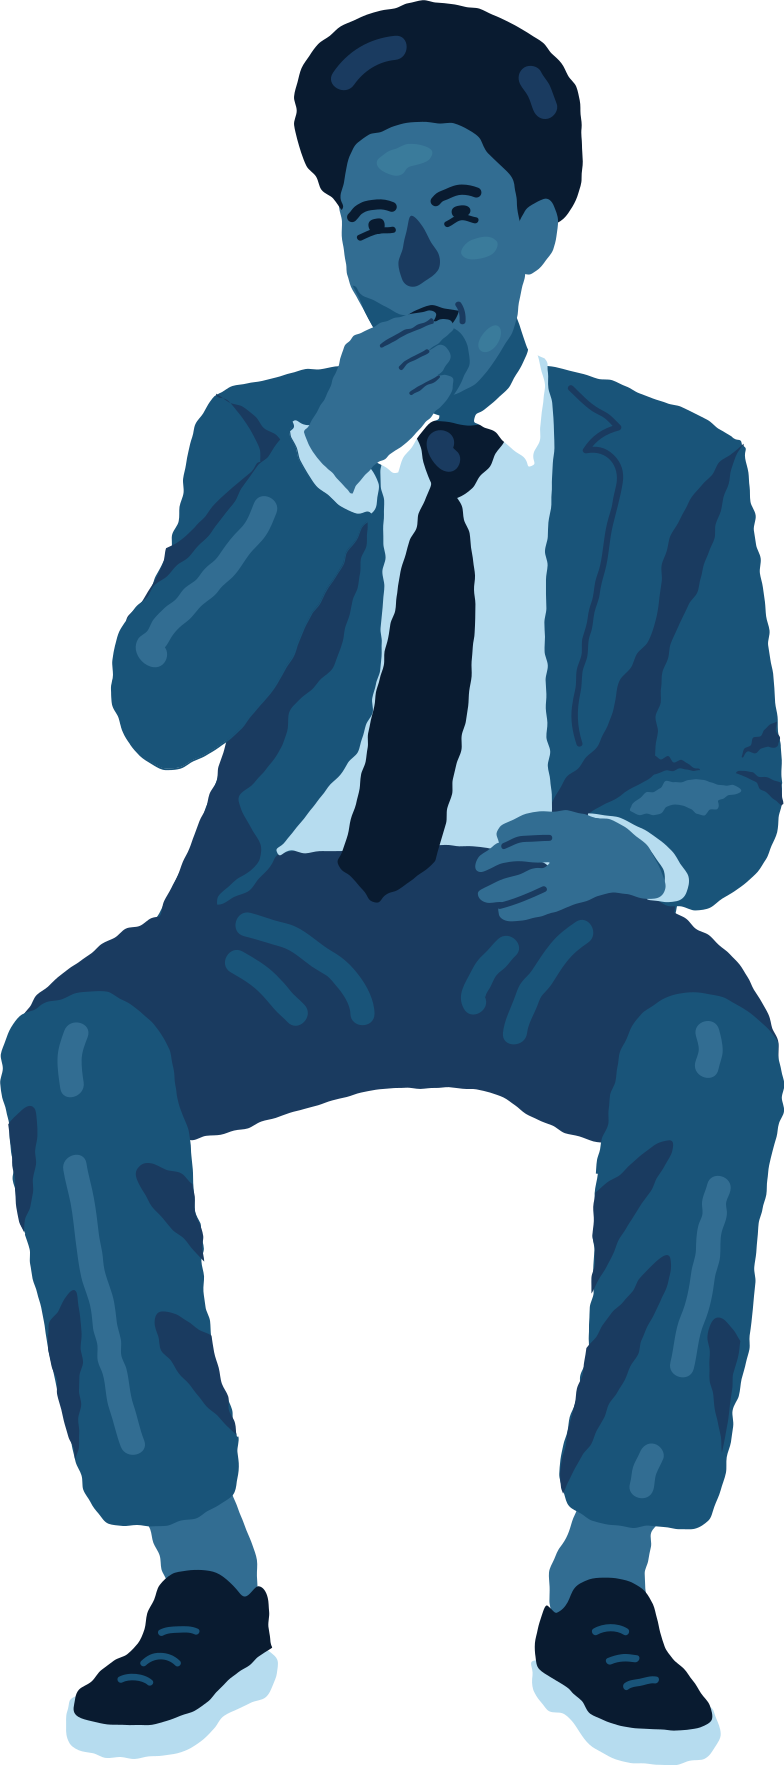 style sitting man cinema Vector images in PNG and SVG | Icons8 Illustrations